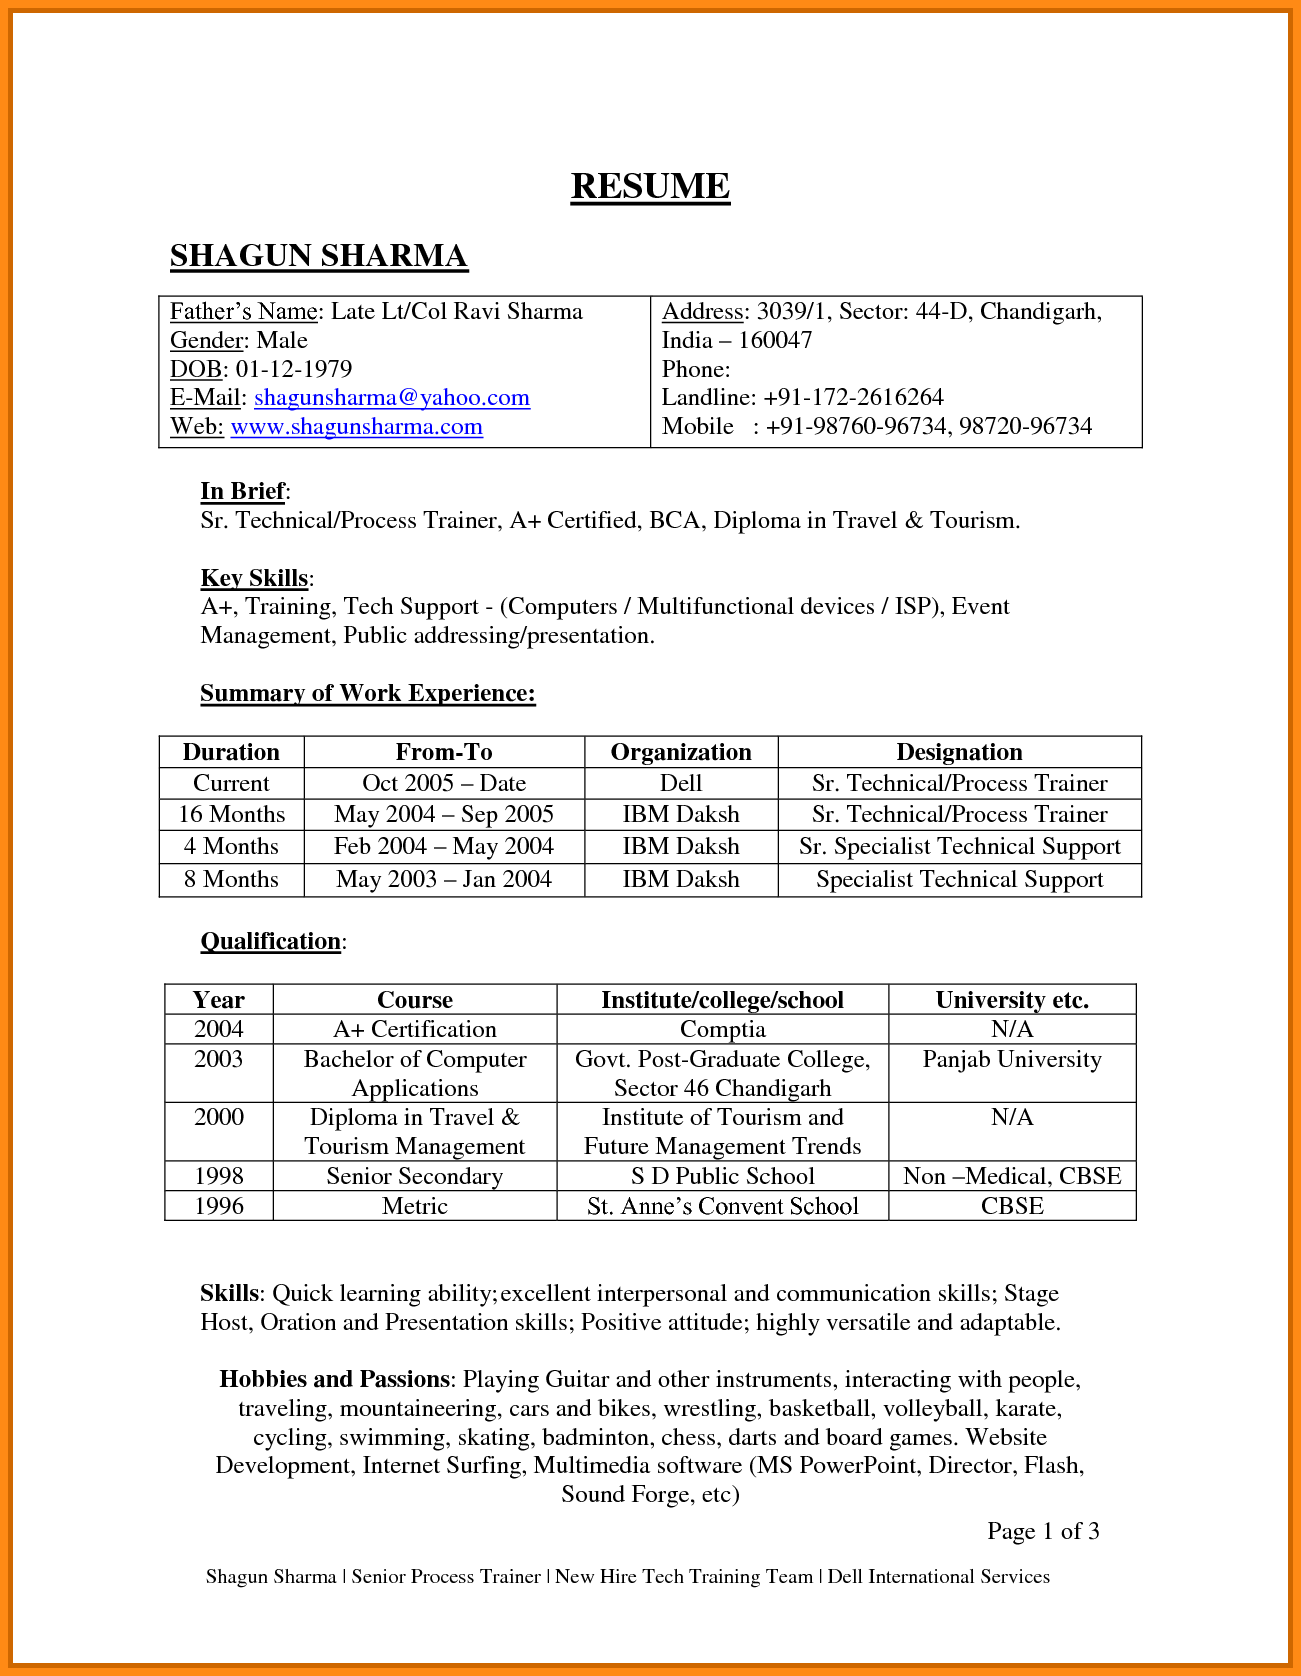 resume format pdf for freshers 100 images academic writing thesis